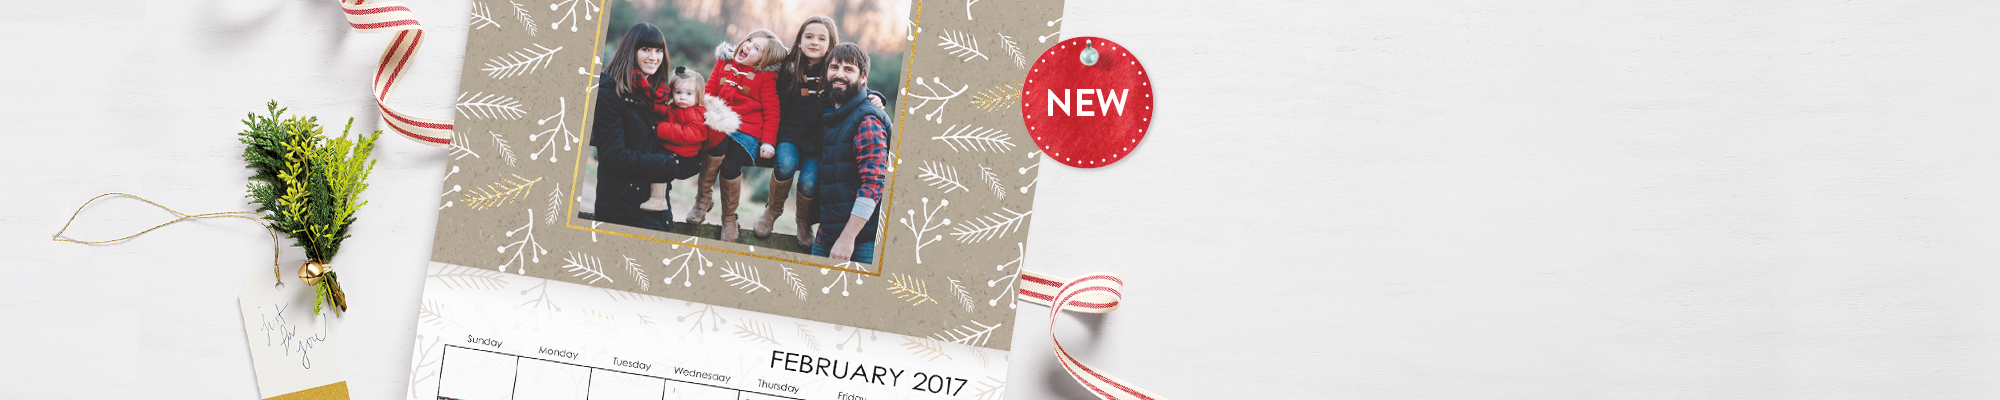 Give the look of luxe : Our new 9x12 Premium Stationery Wall Calendar is the gift that everyone will love all year long.